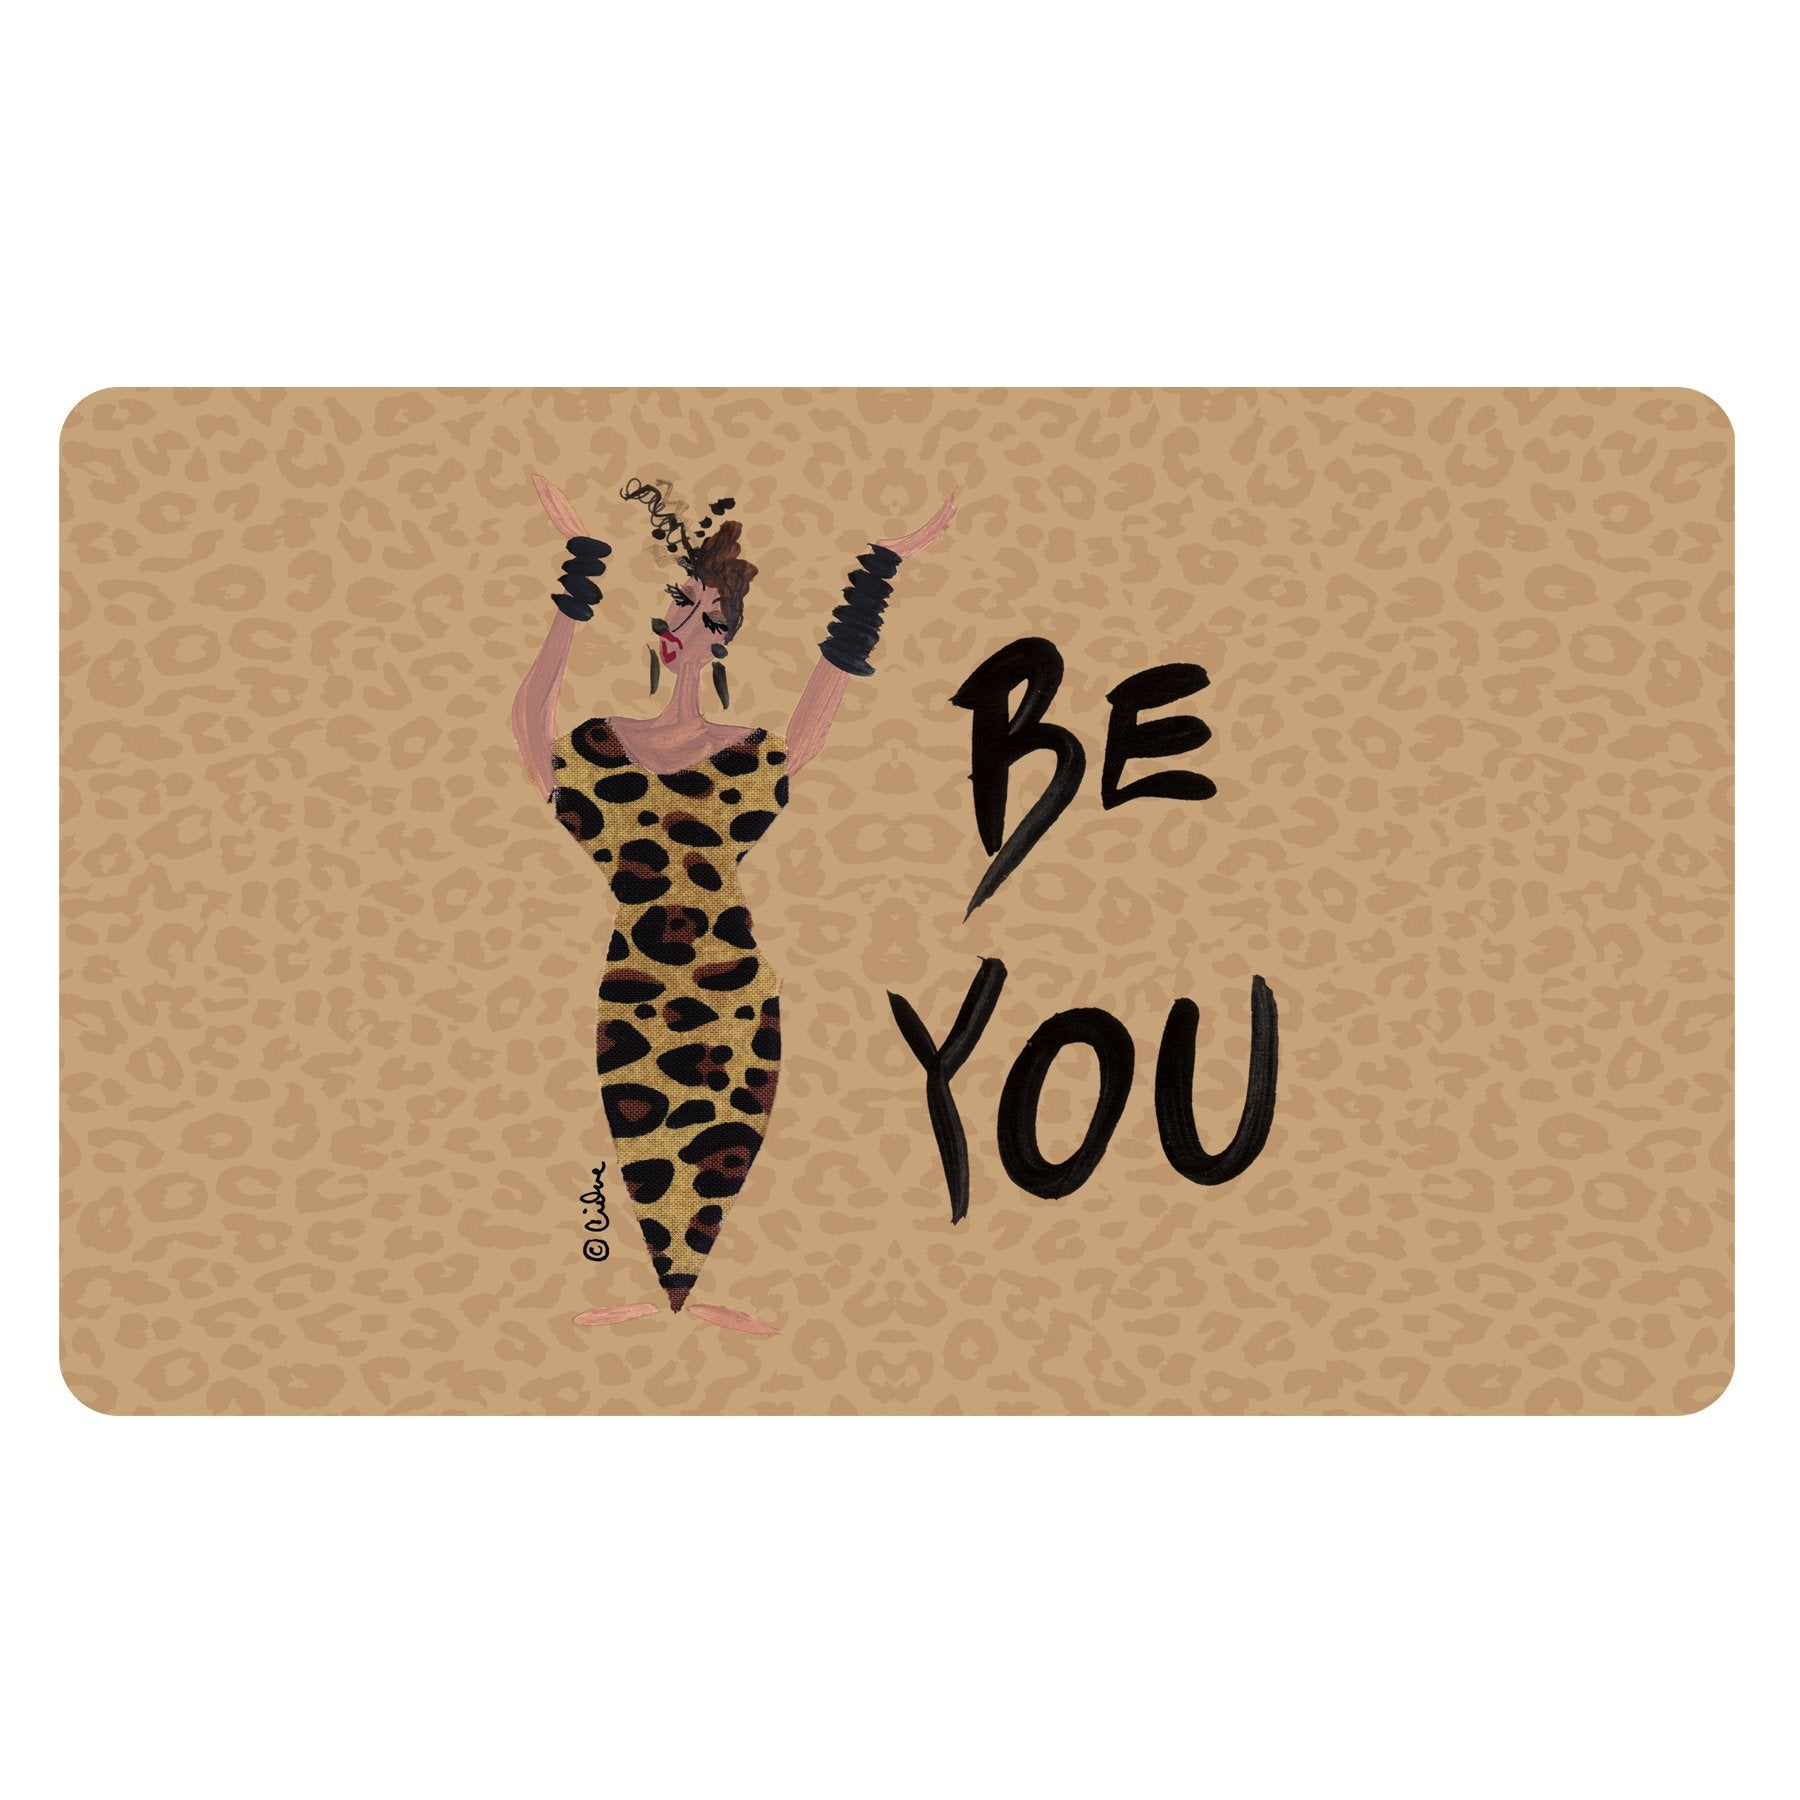 Be You: Cidne Wallace Interior Floor Mat by Shades of Color